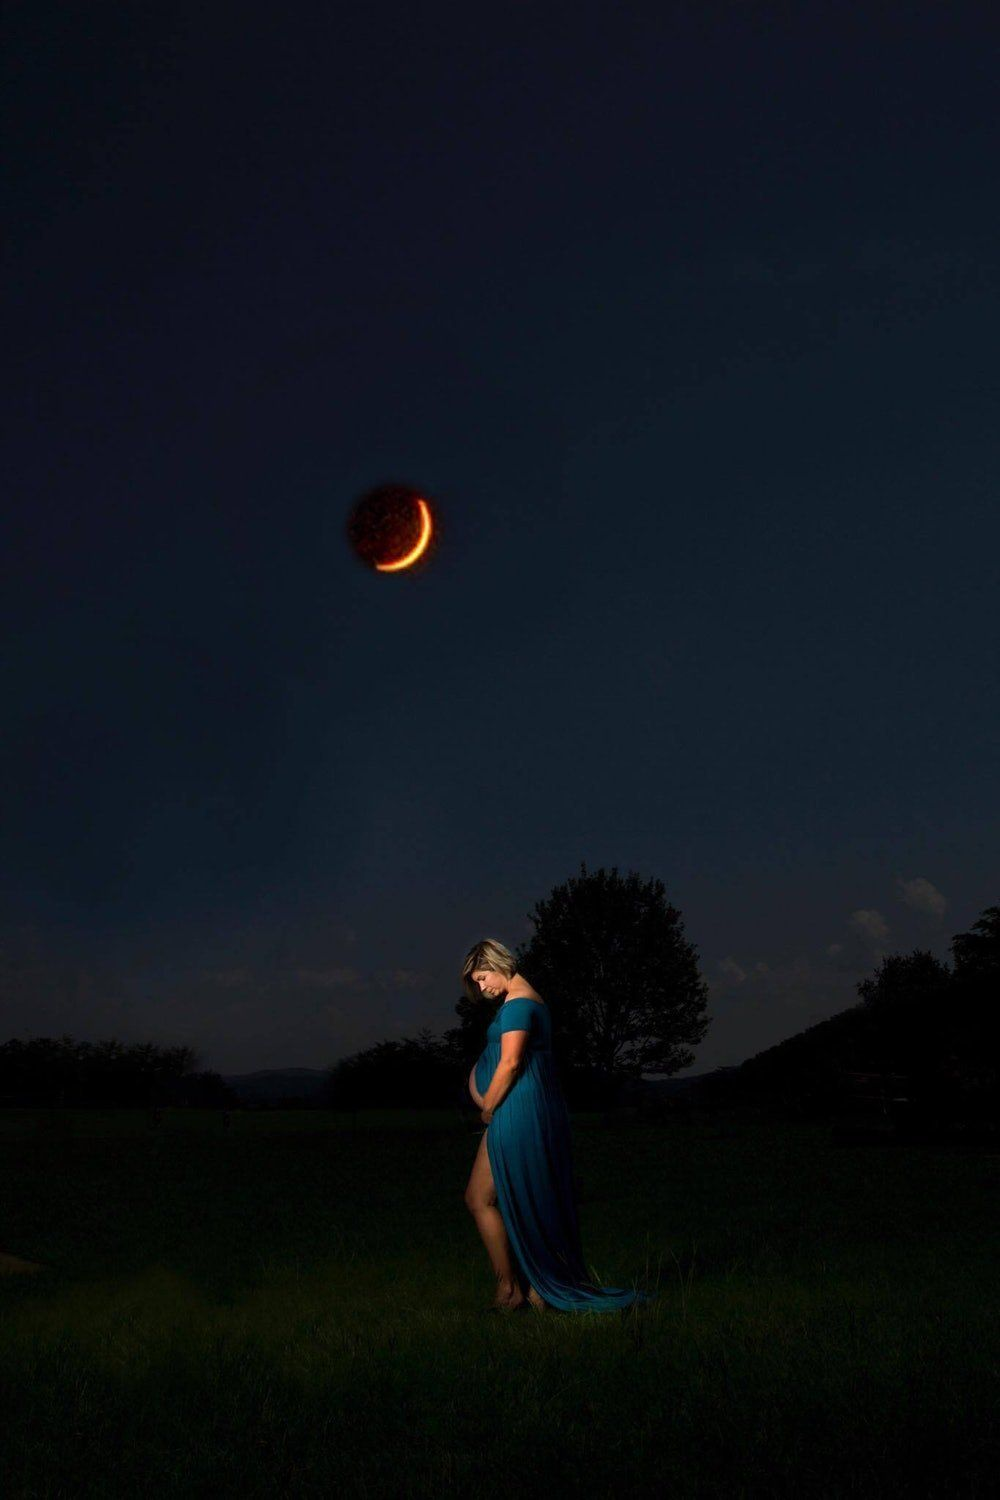 """""""When we heard about the eclipse, we knew we had to try to get the shot,"""" Cruikshank told HuffPost."""